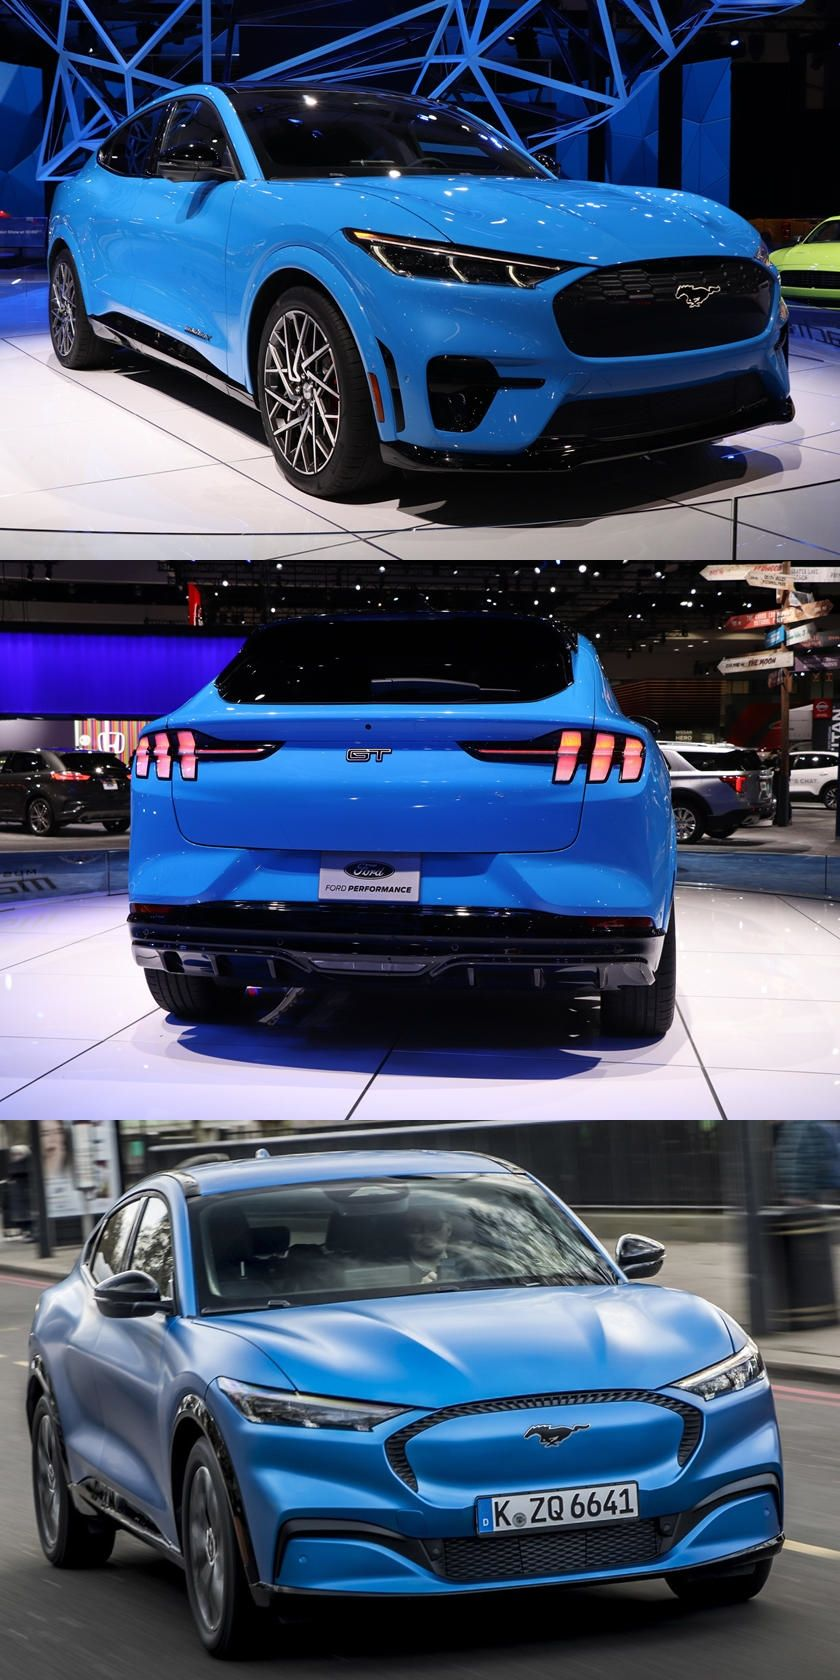 Here S When Ford Mustang Mach E Orders Will Begin In 2020 Ford Mustang Ford Mustang Shelby Gt500 Mustang